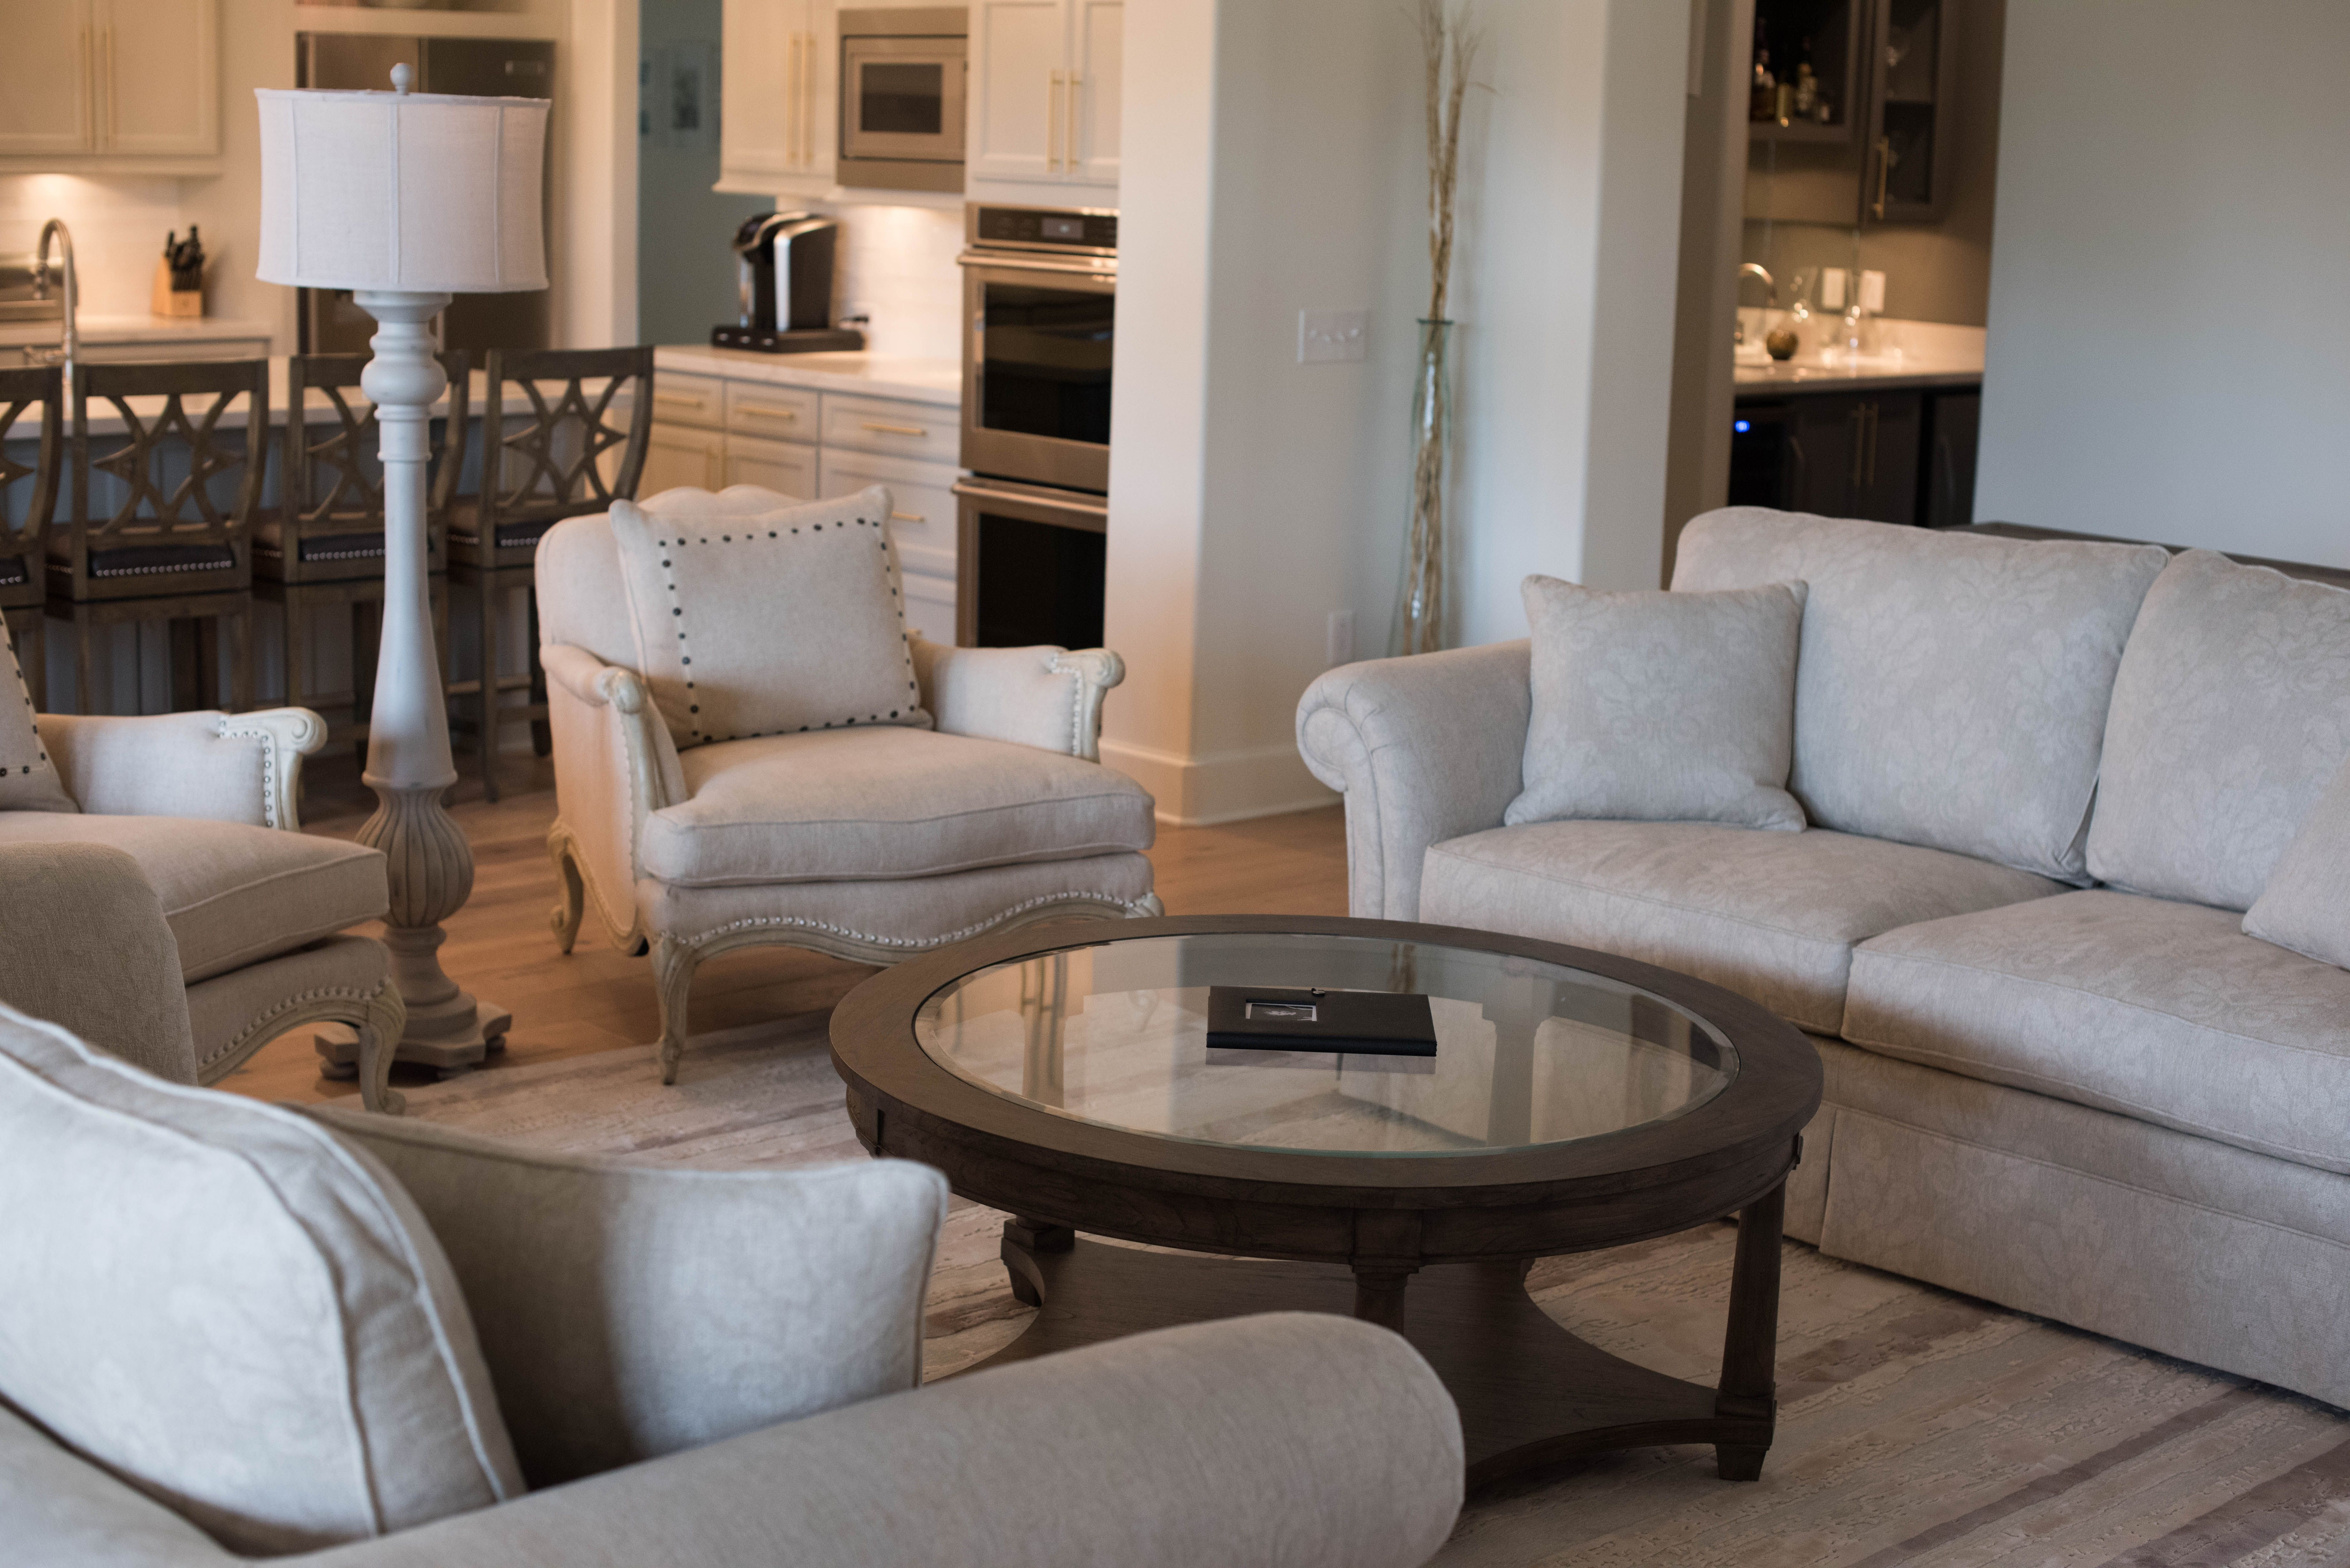 Pin On Living Room Inspos #white #and #tan #living #room